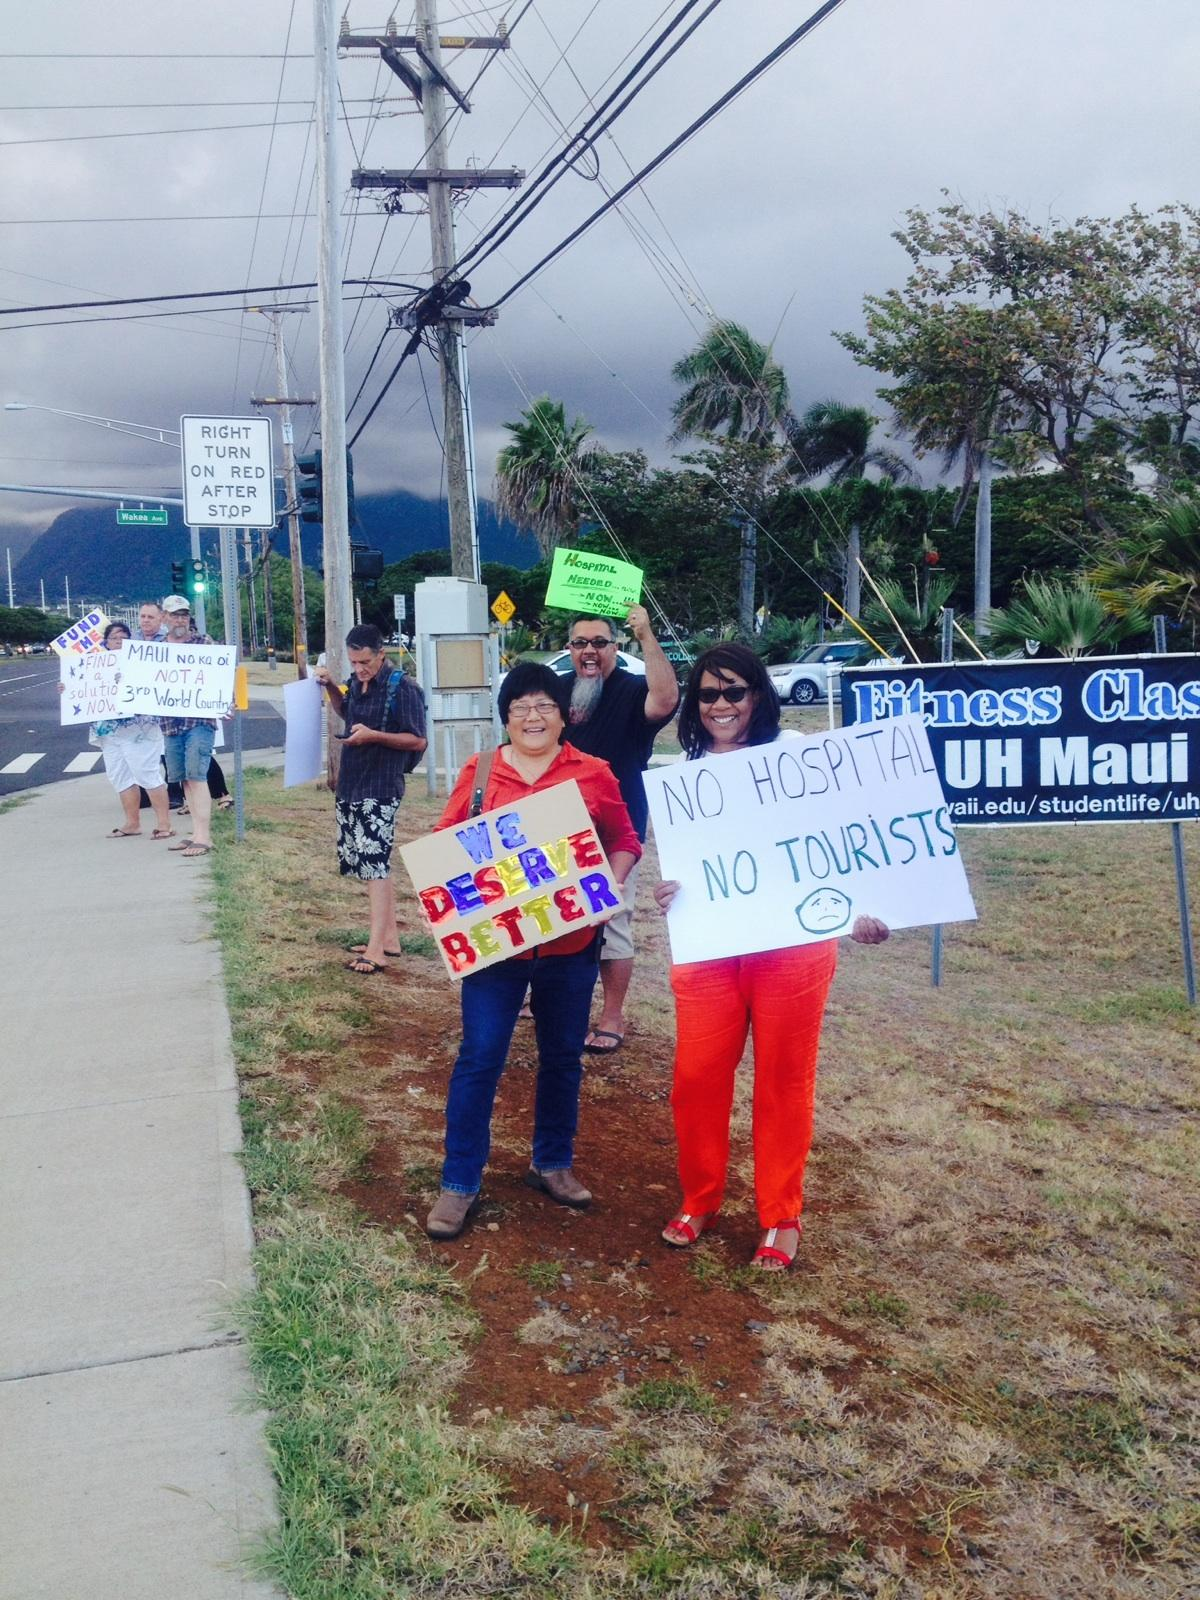 Informational briefing on the status of health care on Maui, 10.17.16. Courtesy photo.